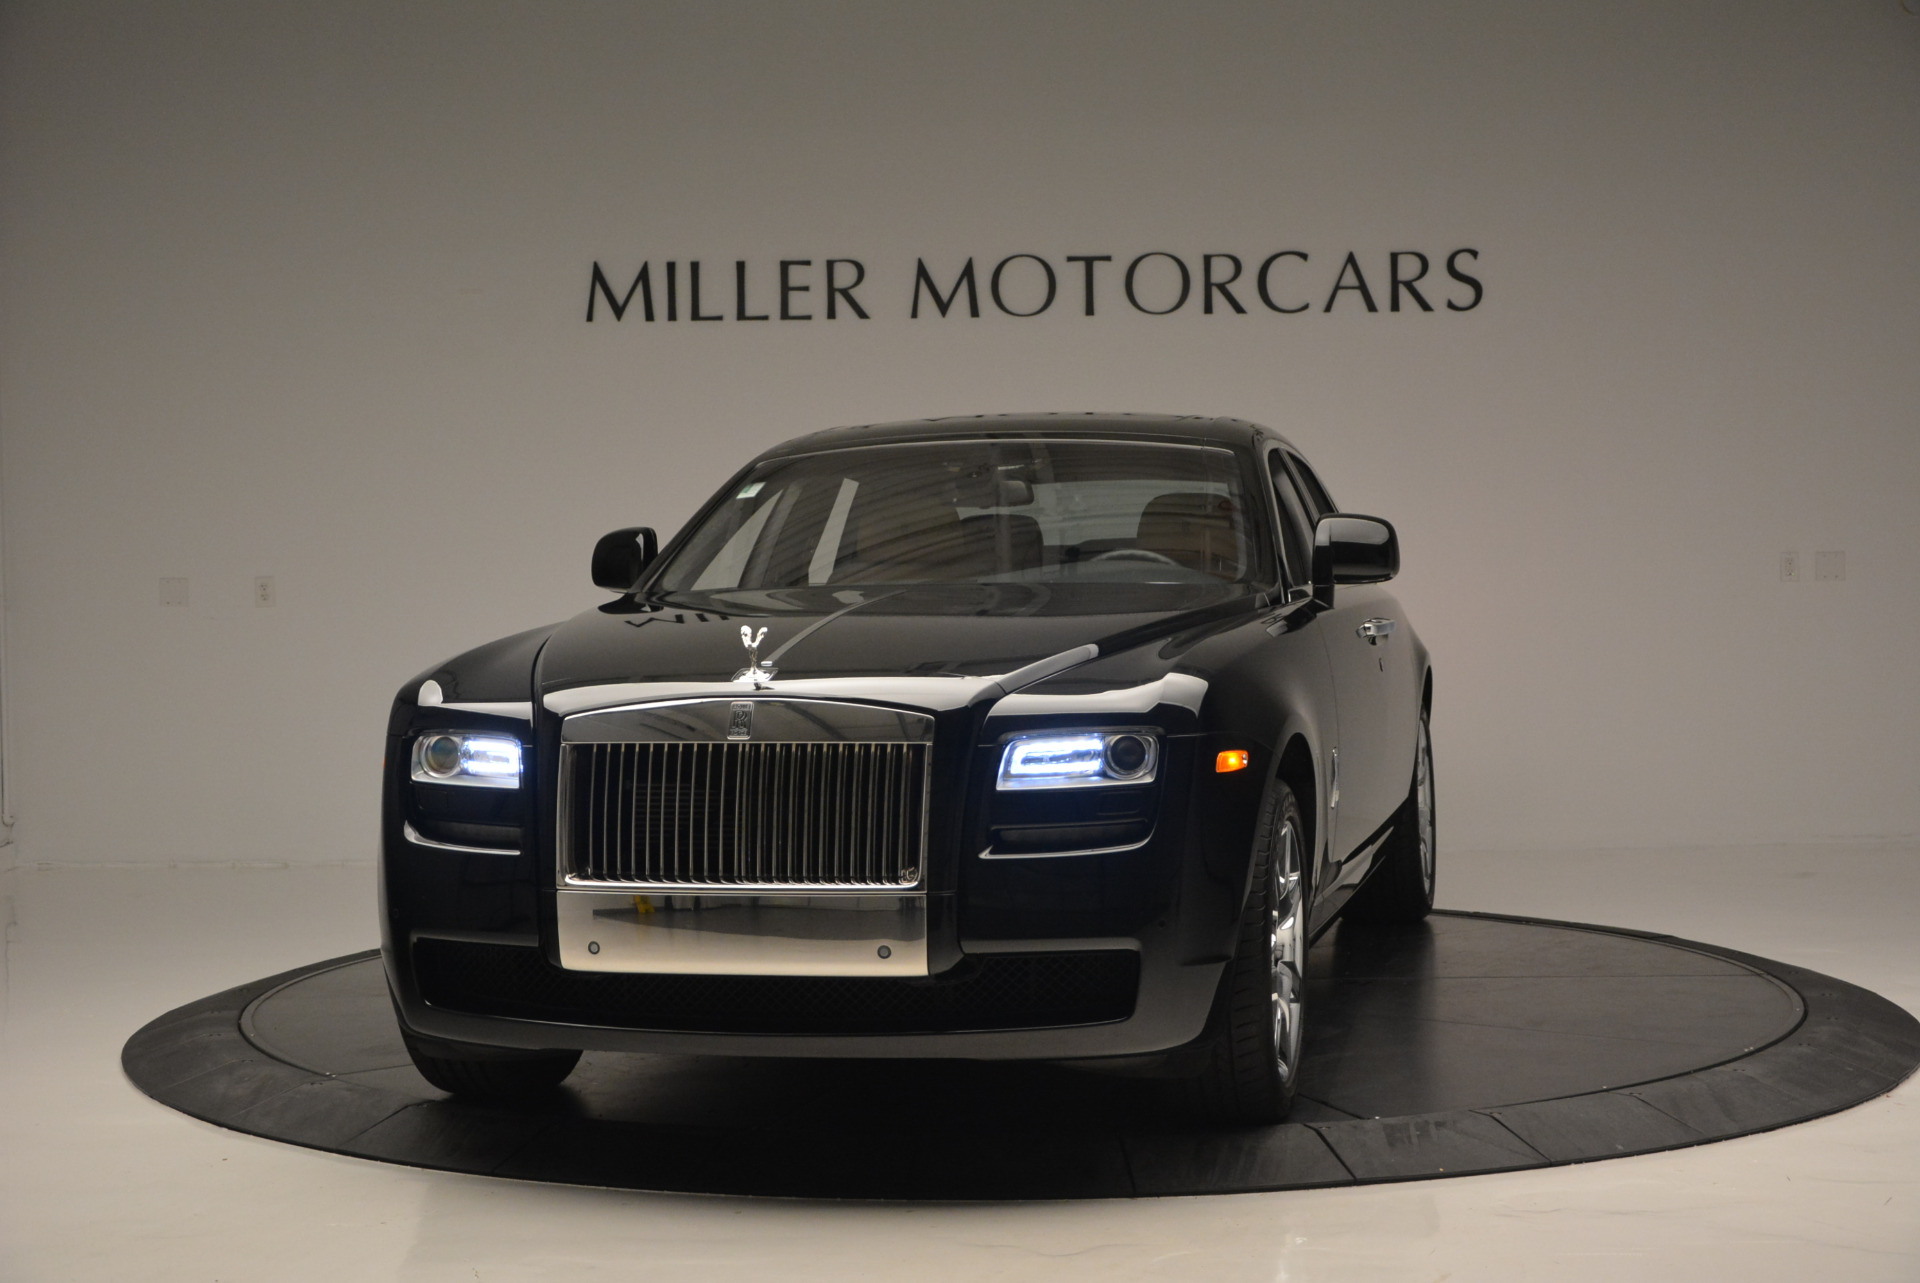 Used 2011 Rolls-Royce Ghost for sale Sold at Bentley Greenwich in Greenwich CT 06830 1